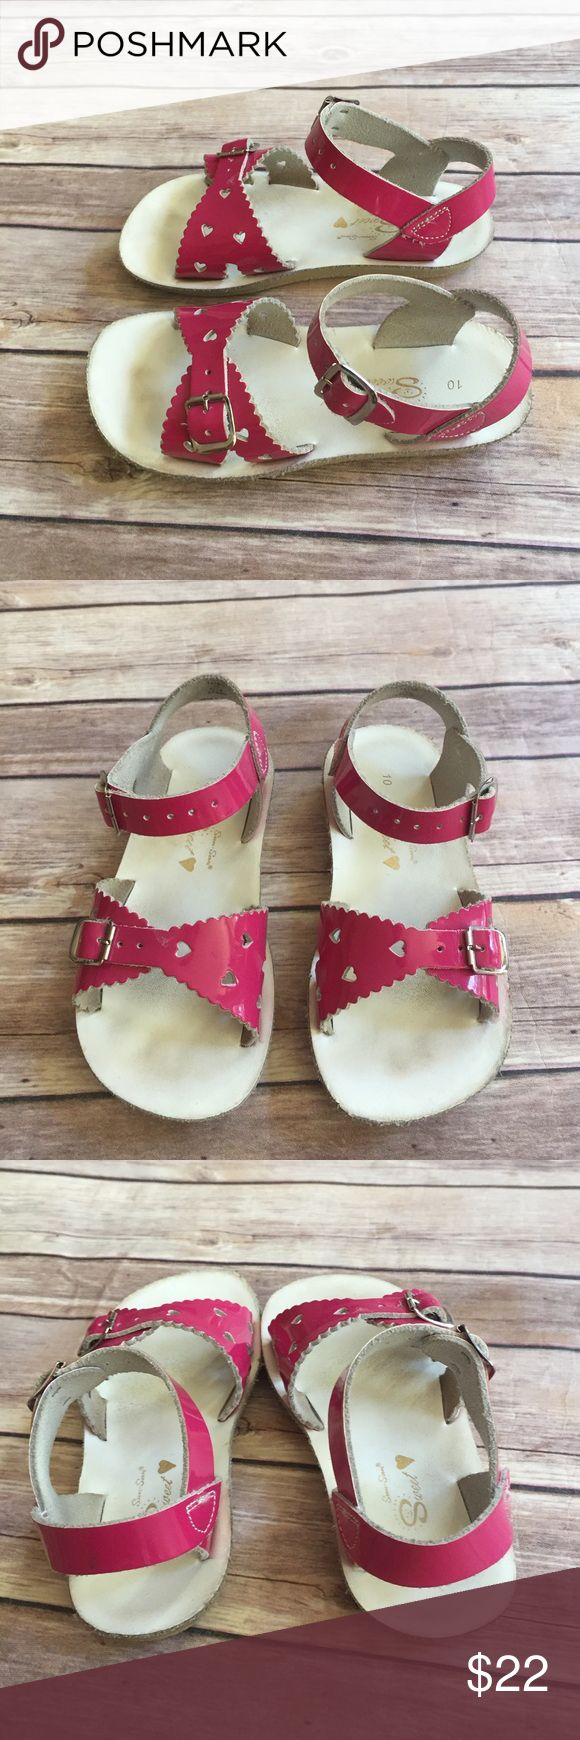 Salt Water Sandals Size 10 toddler bright pink salt water sandals in very good used condition.  Footbeds are very clean.  Great sandals! Salt Water Sandals by Hoy Shoes Sandals & Flip Flops